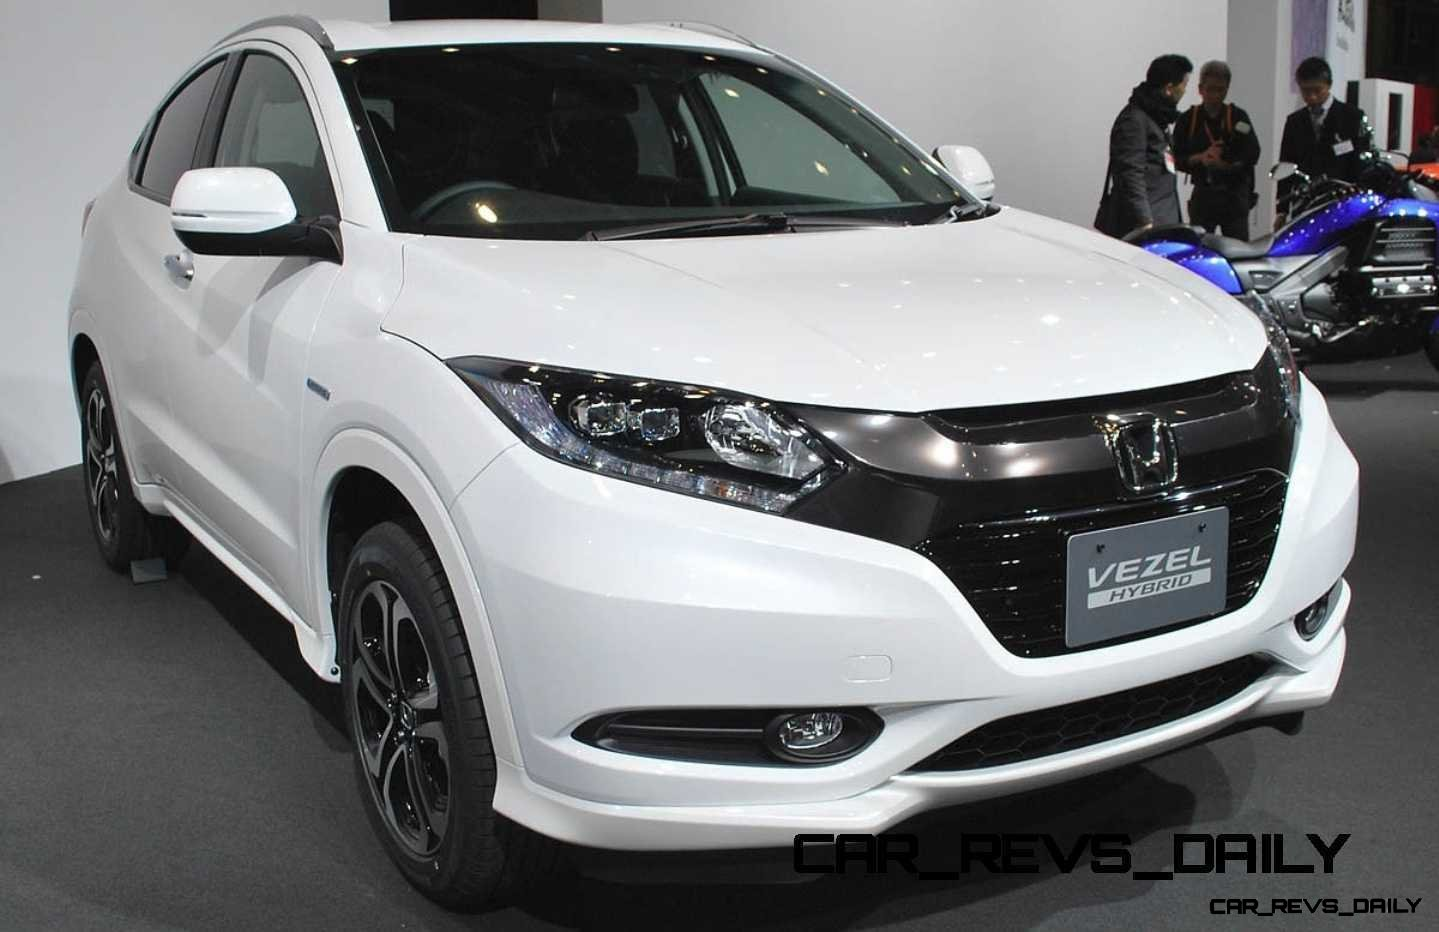 Cool! 2015 Honda Vezel Hybrid Previews Spring 2014 Civic CUV36